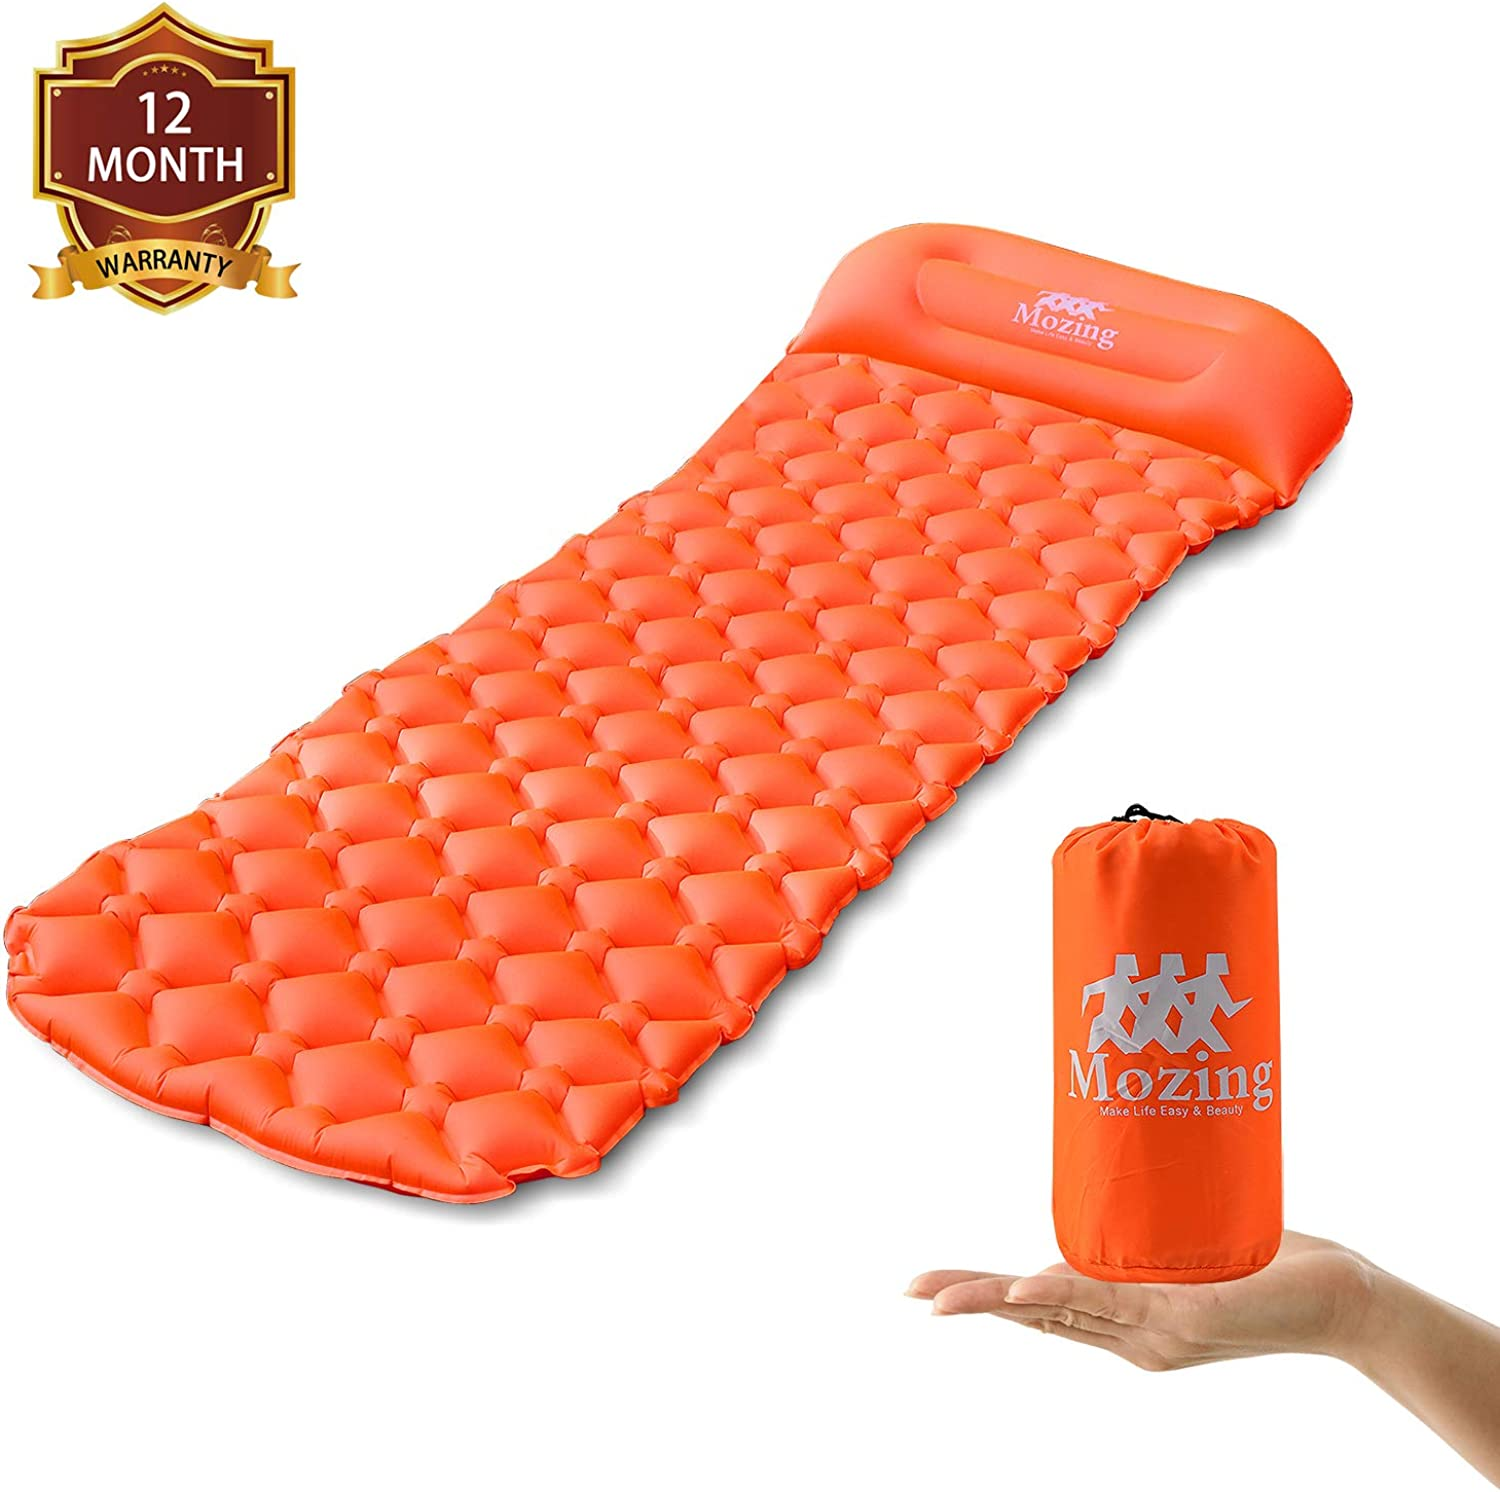 Mozing Camping Sleeping Pad Self Inflating with Attached Pillow, Ultralight Sleeping Mats Camping Pad Inflatable Lightweight Air Pads for Hiking Backpacking Traveling and Outdoor